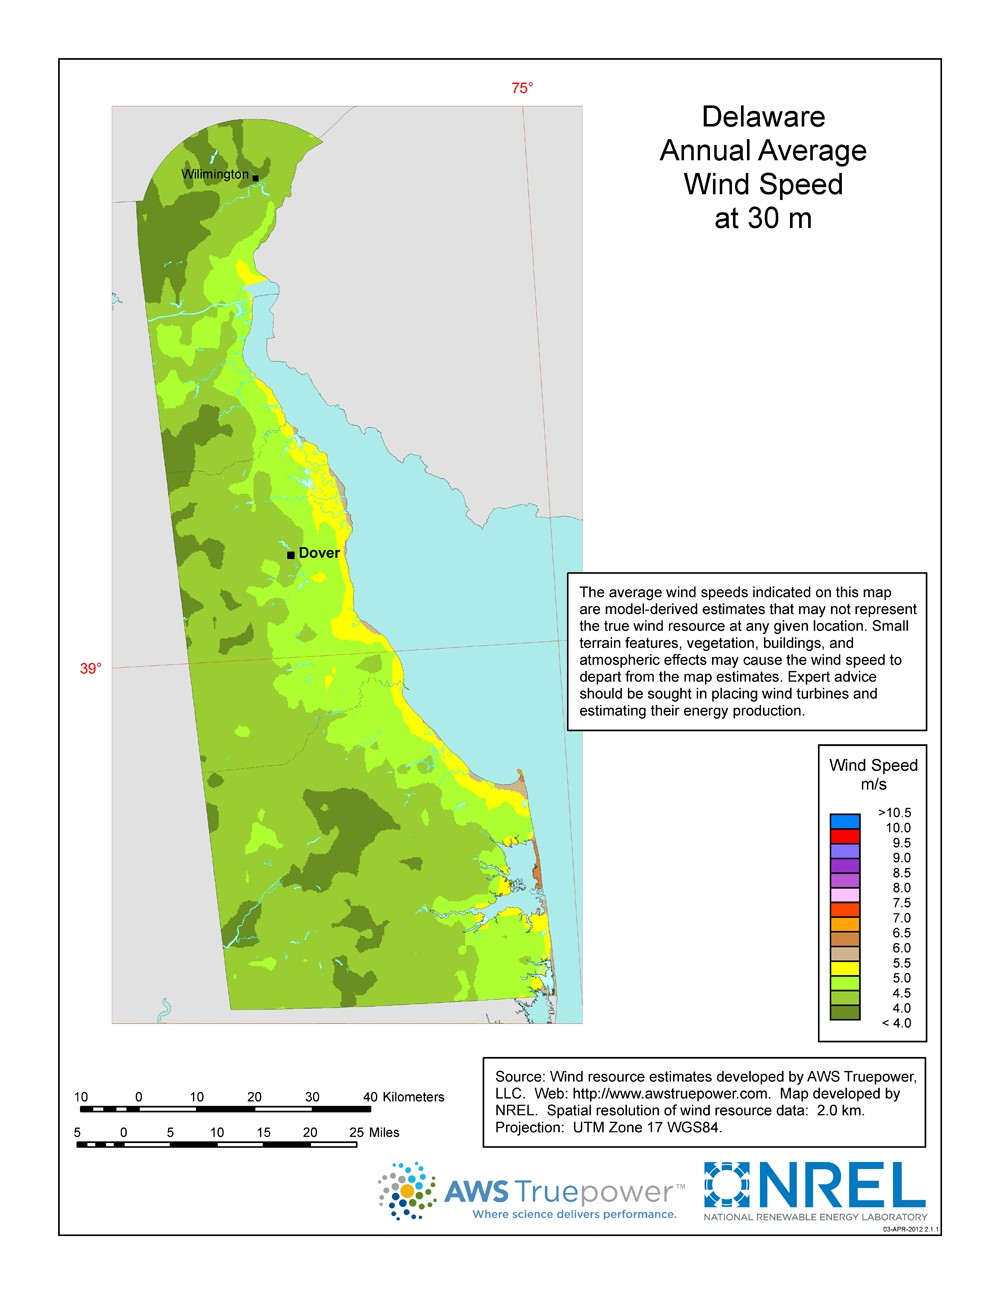 A map of Delaware showing wind speeds at a 30-m height.